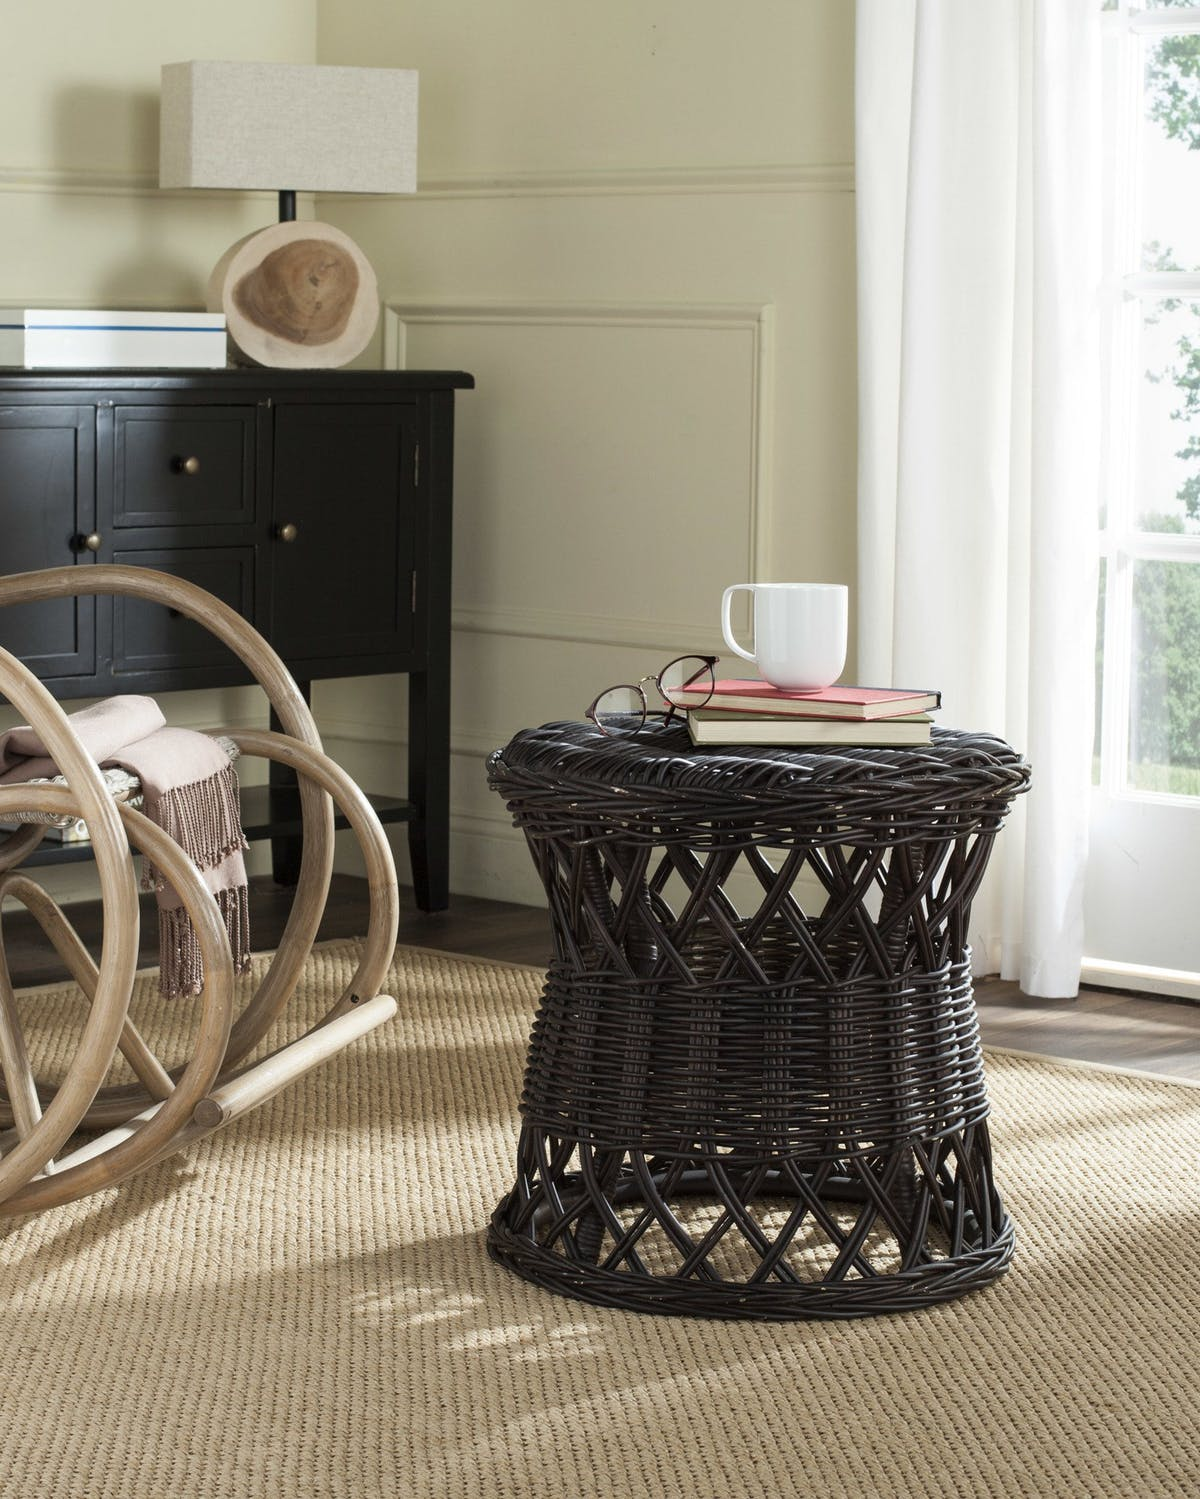 safavieh desta wicker round accent table modish room jofran tiffany tree lamp reclaimed oak furniture trestle and chairs white coffee with baskets cast iron patio outdoor small